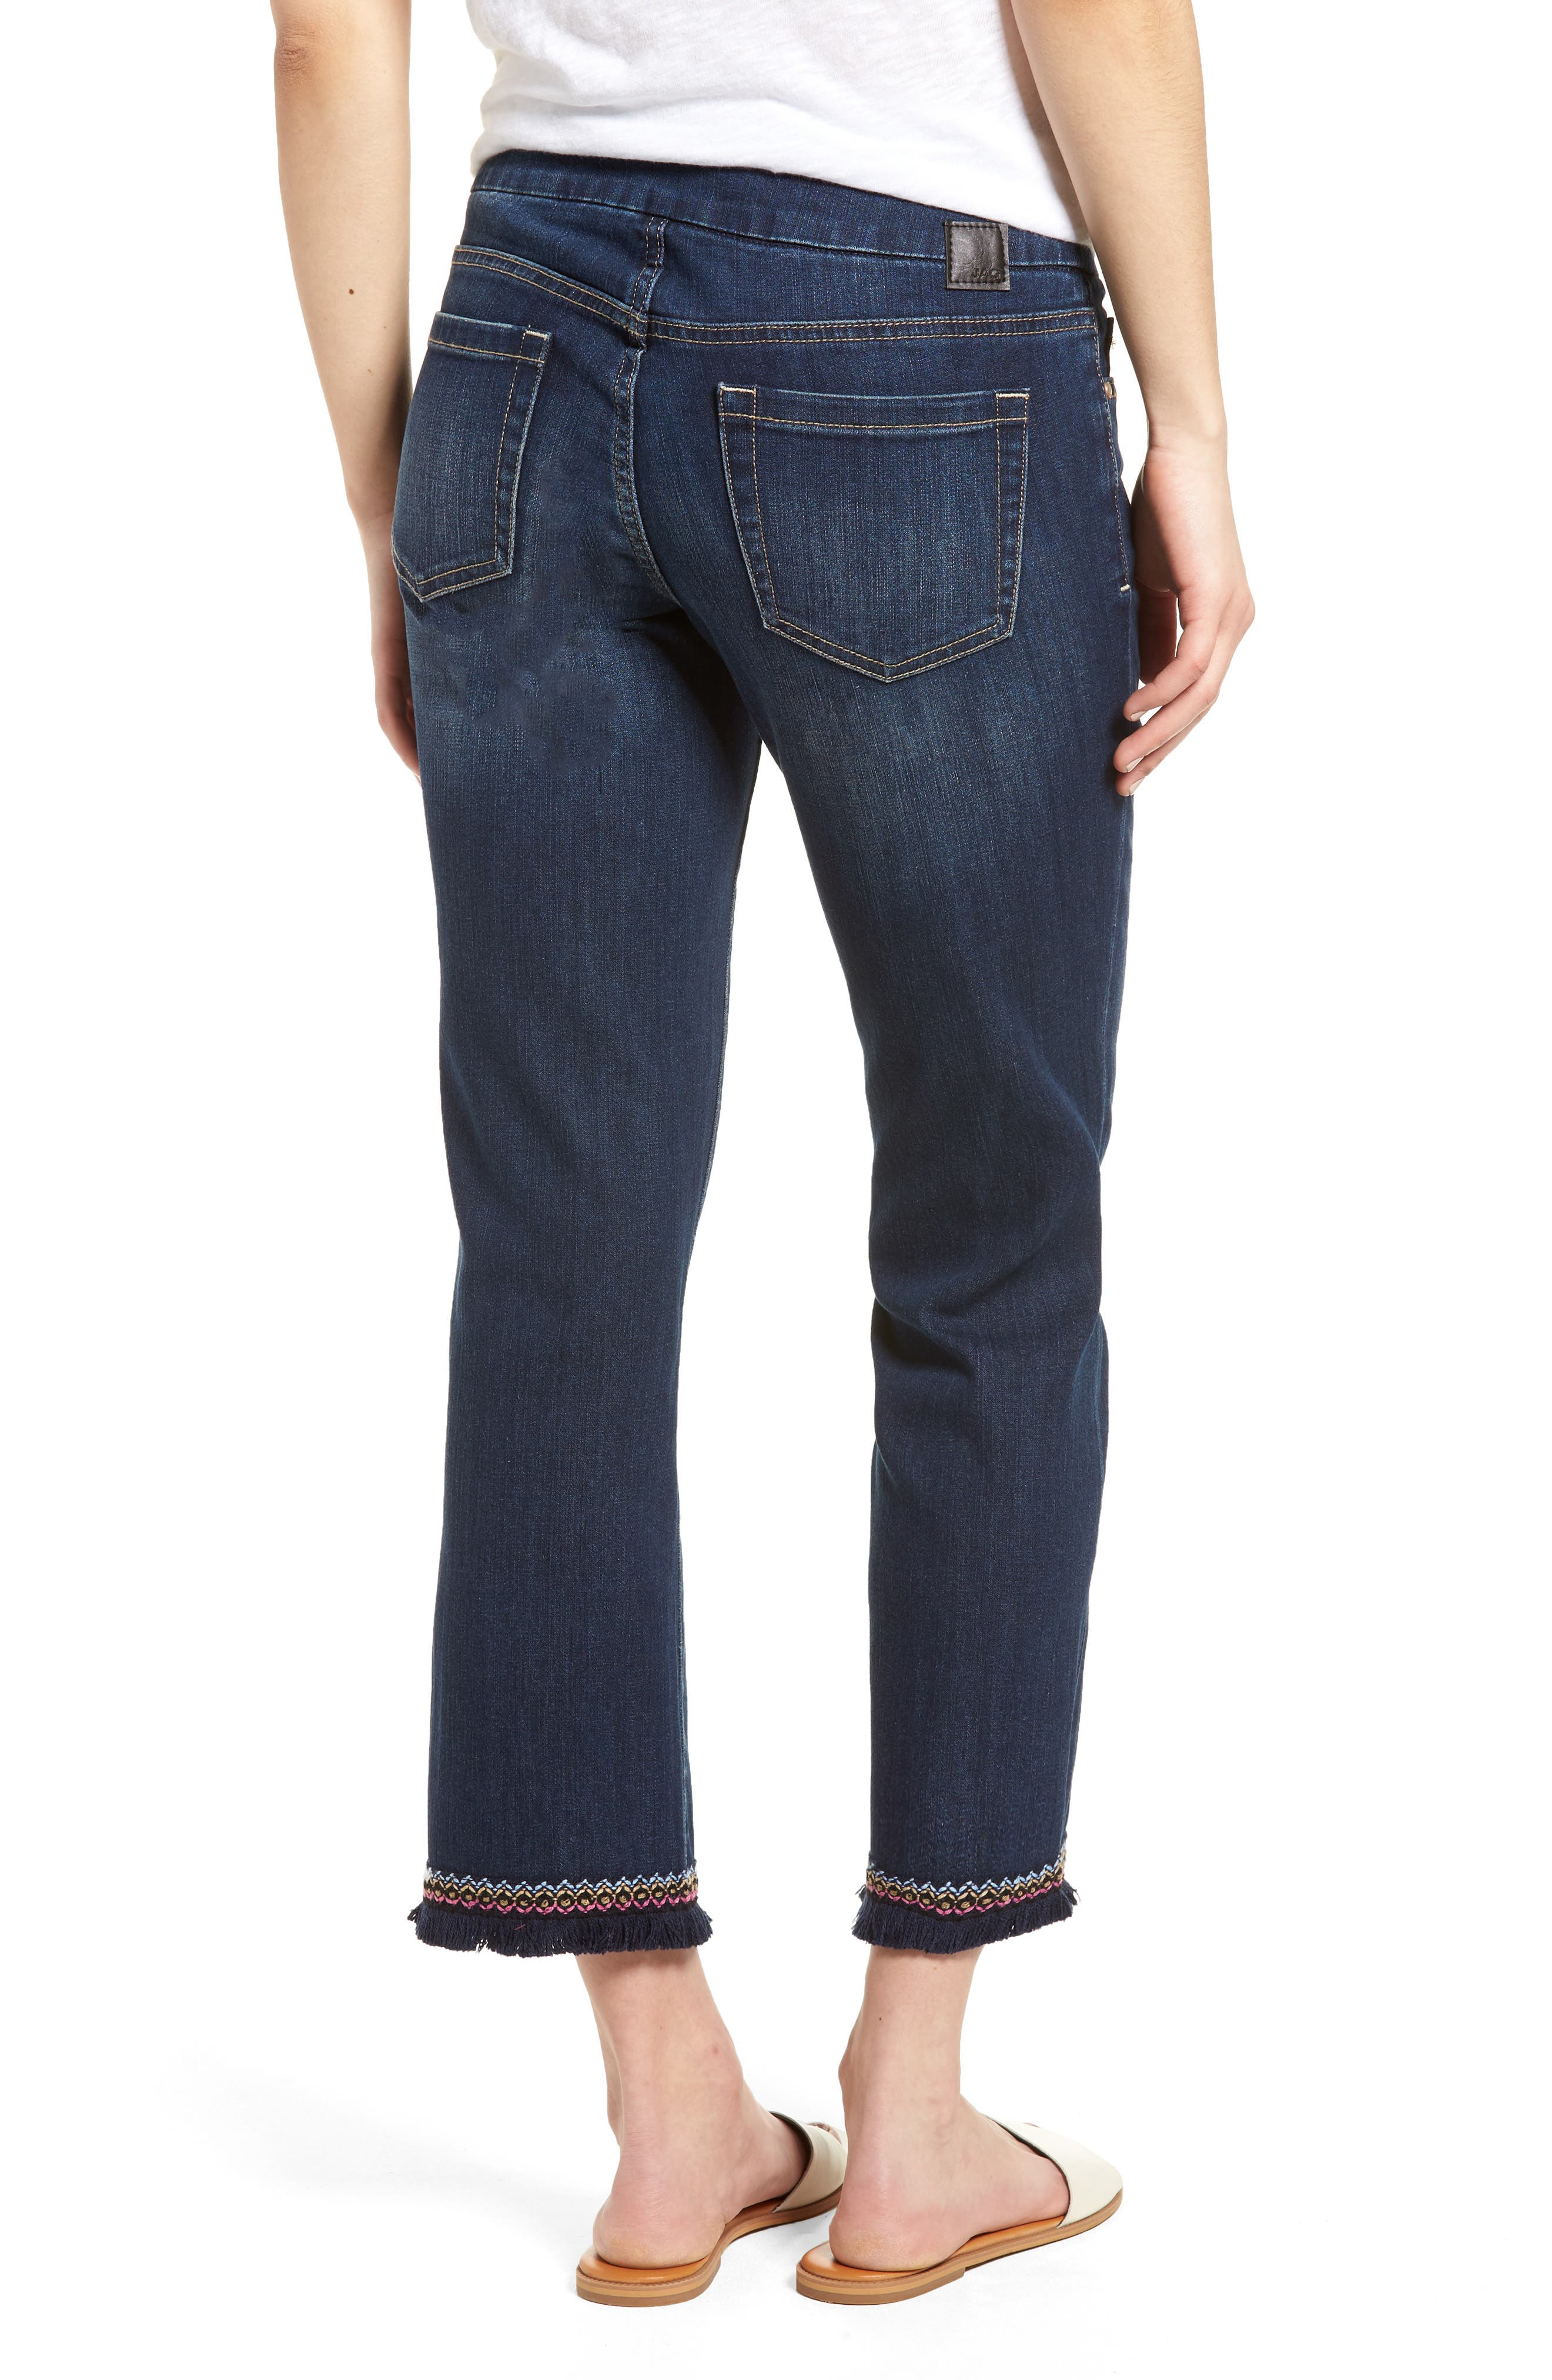 Peri Embroidery Fringe Jeans,                             Alternate thumbnail 2, color,                             420